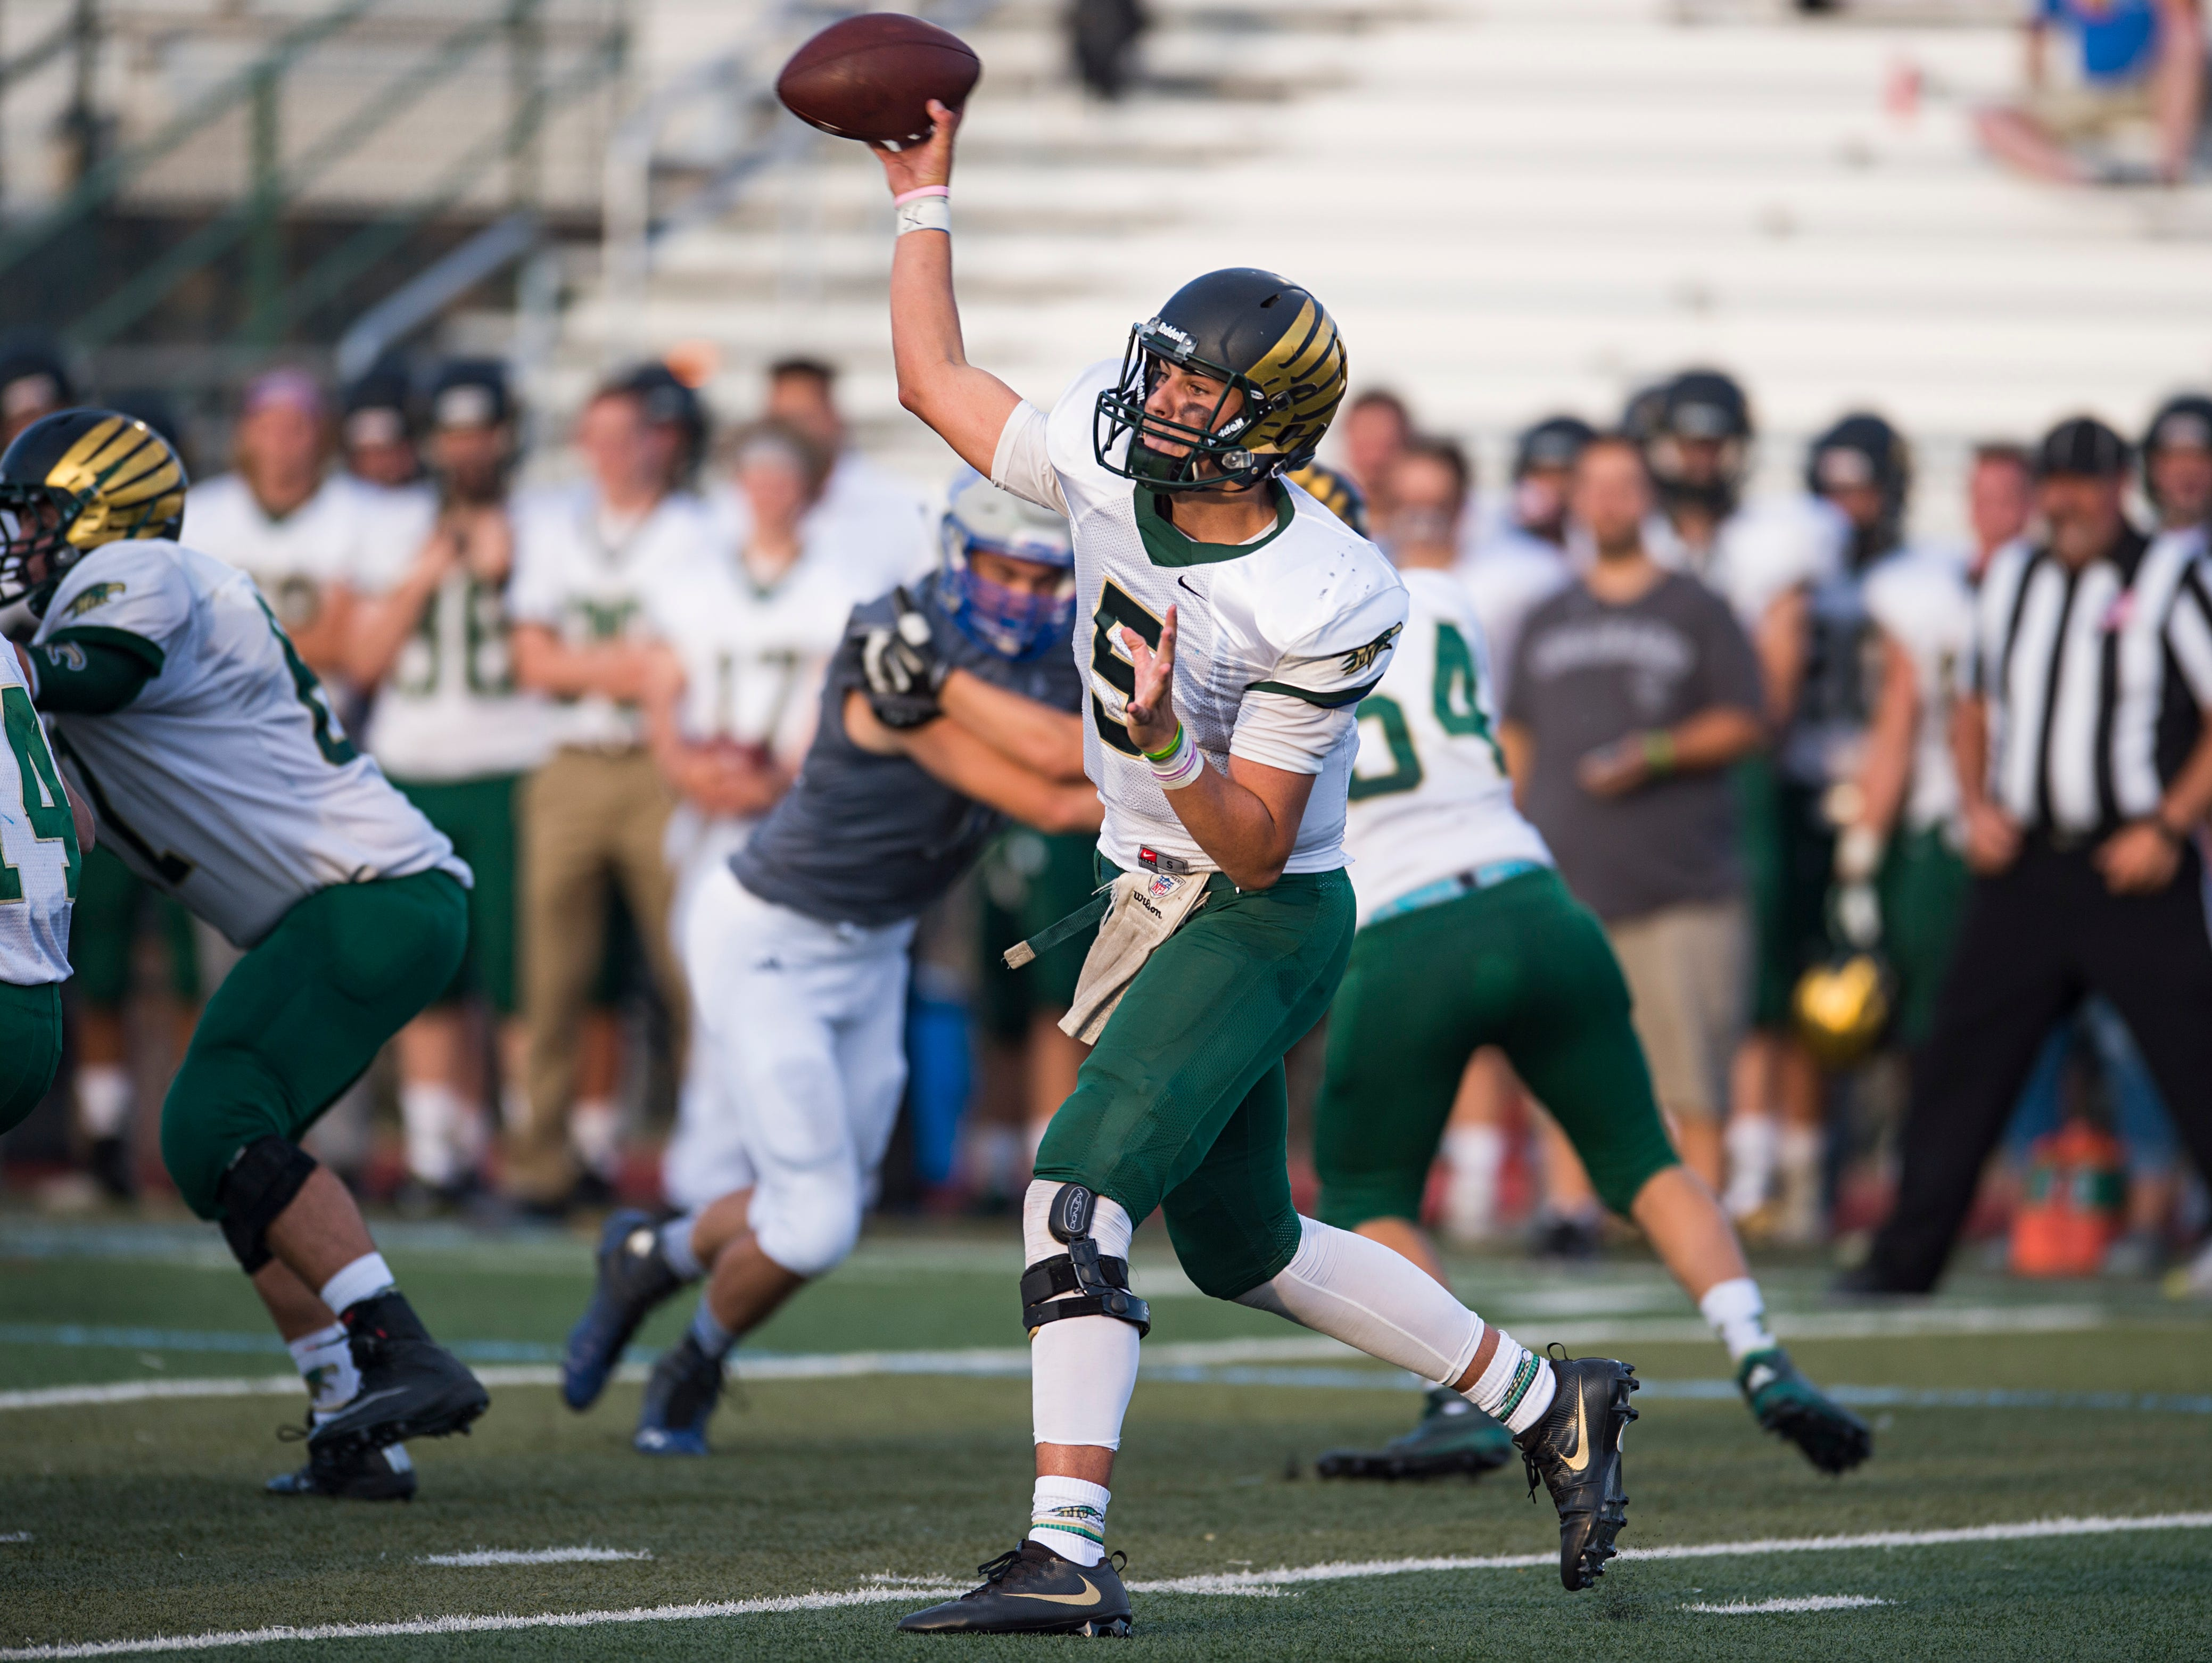 Mountain Vista quarterback Judd Erickson sends the ball to a receiver during a game against Poudre at French Field Thursday, September. The Golden Eagles quarterback stopped the Impalas with 450 yards and a 67-37 victory.